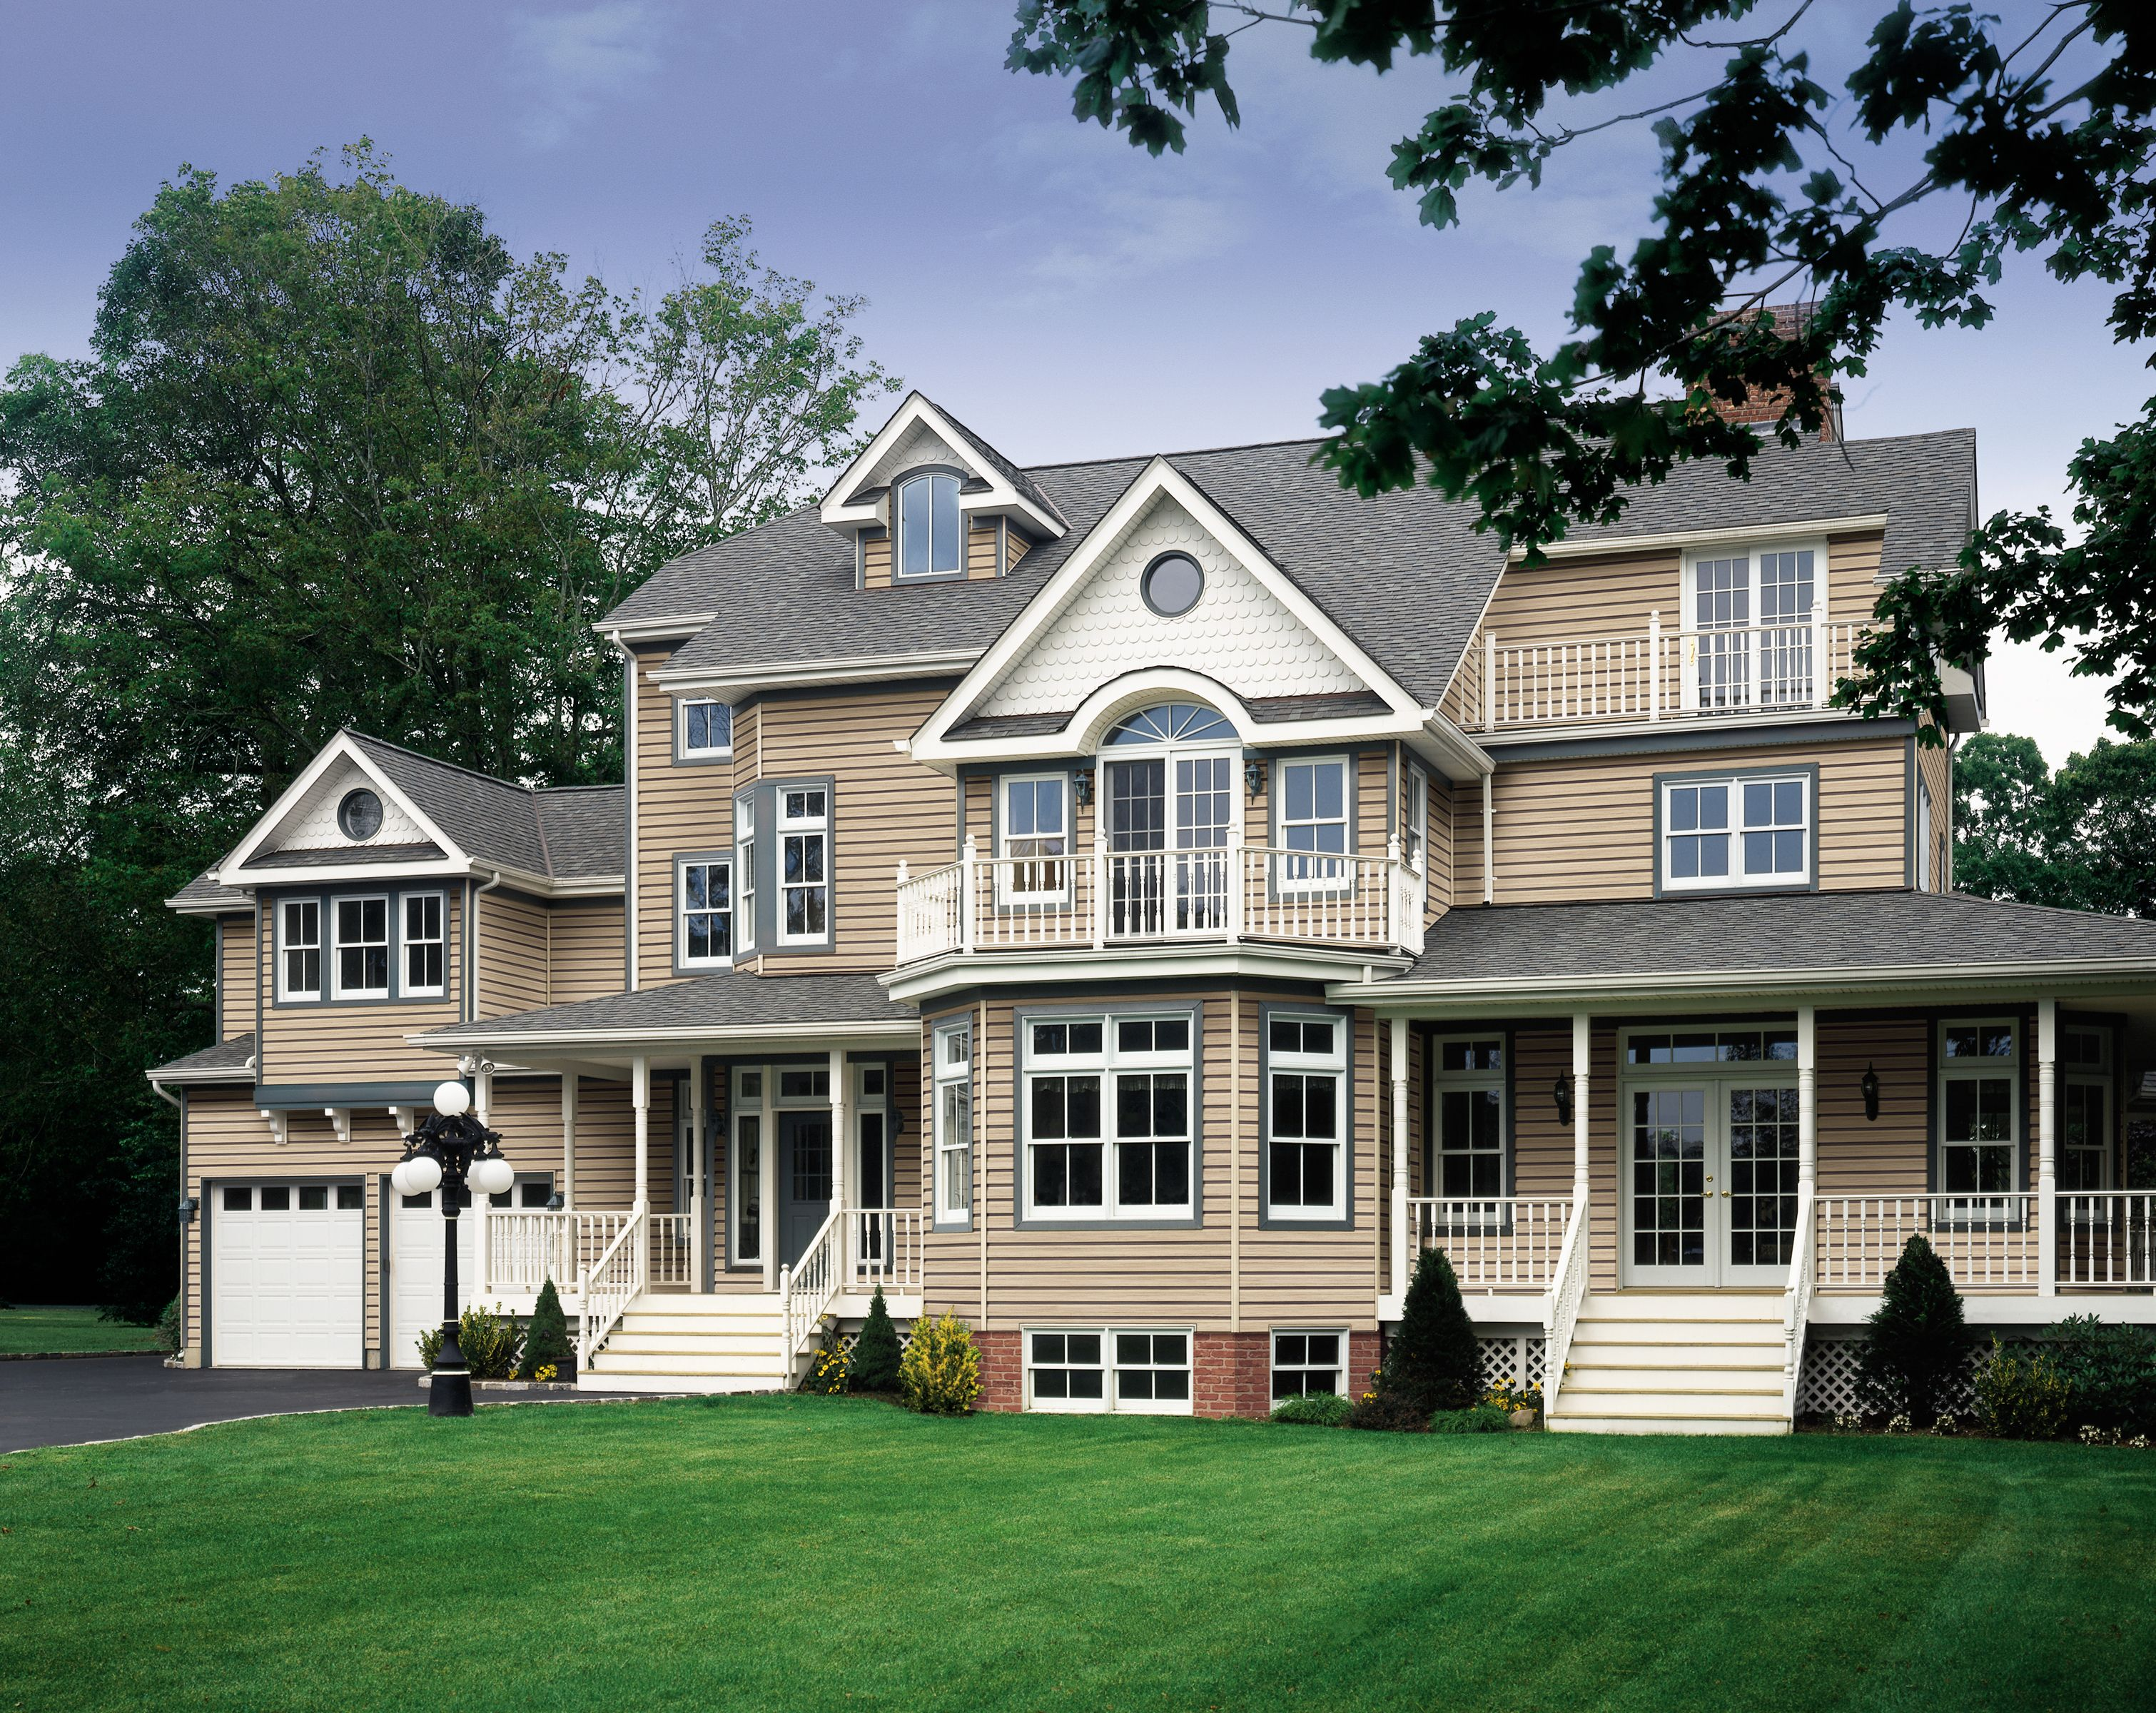 Certainteed Siding Monogram Canyon Blend Colonial